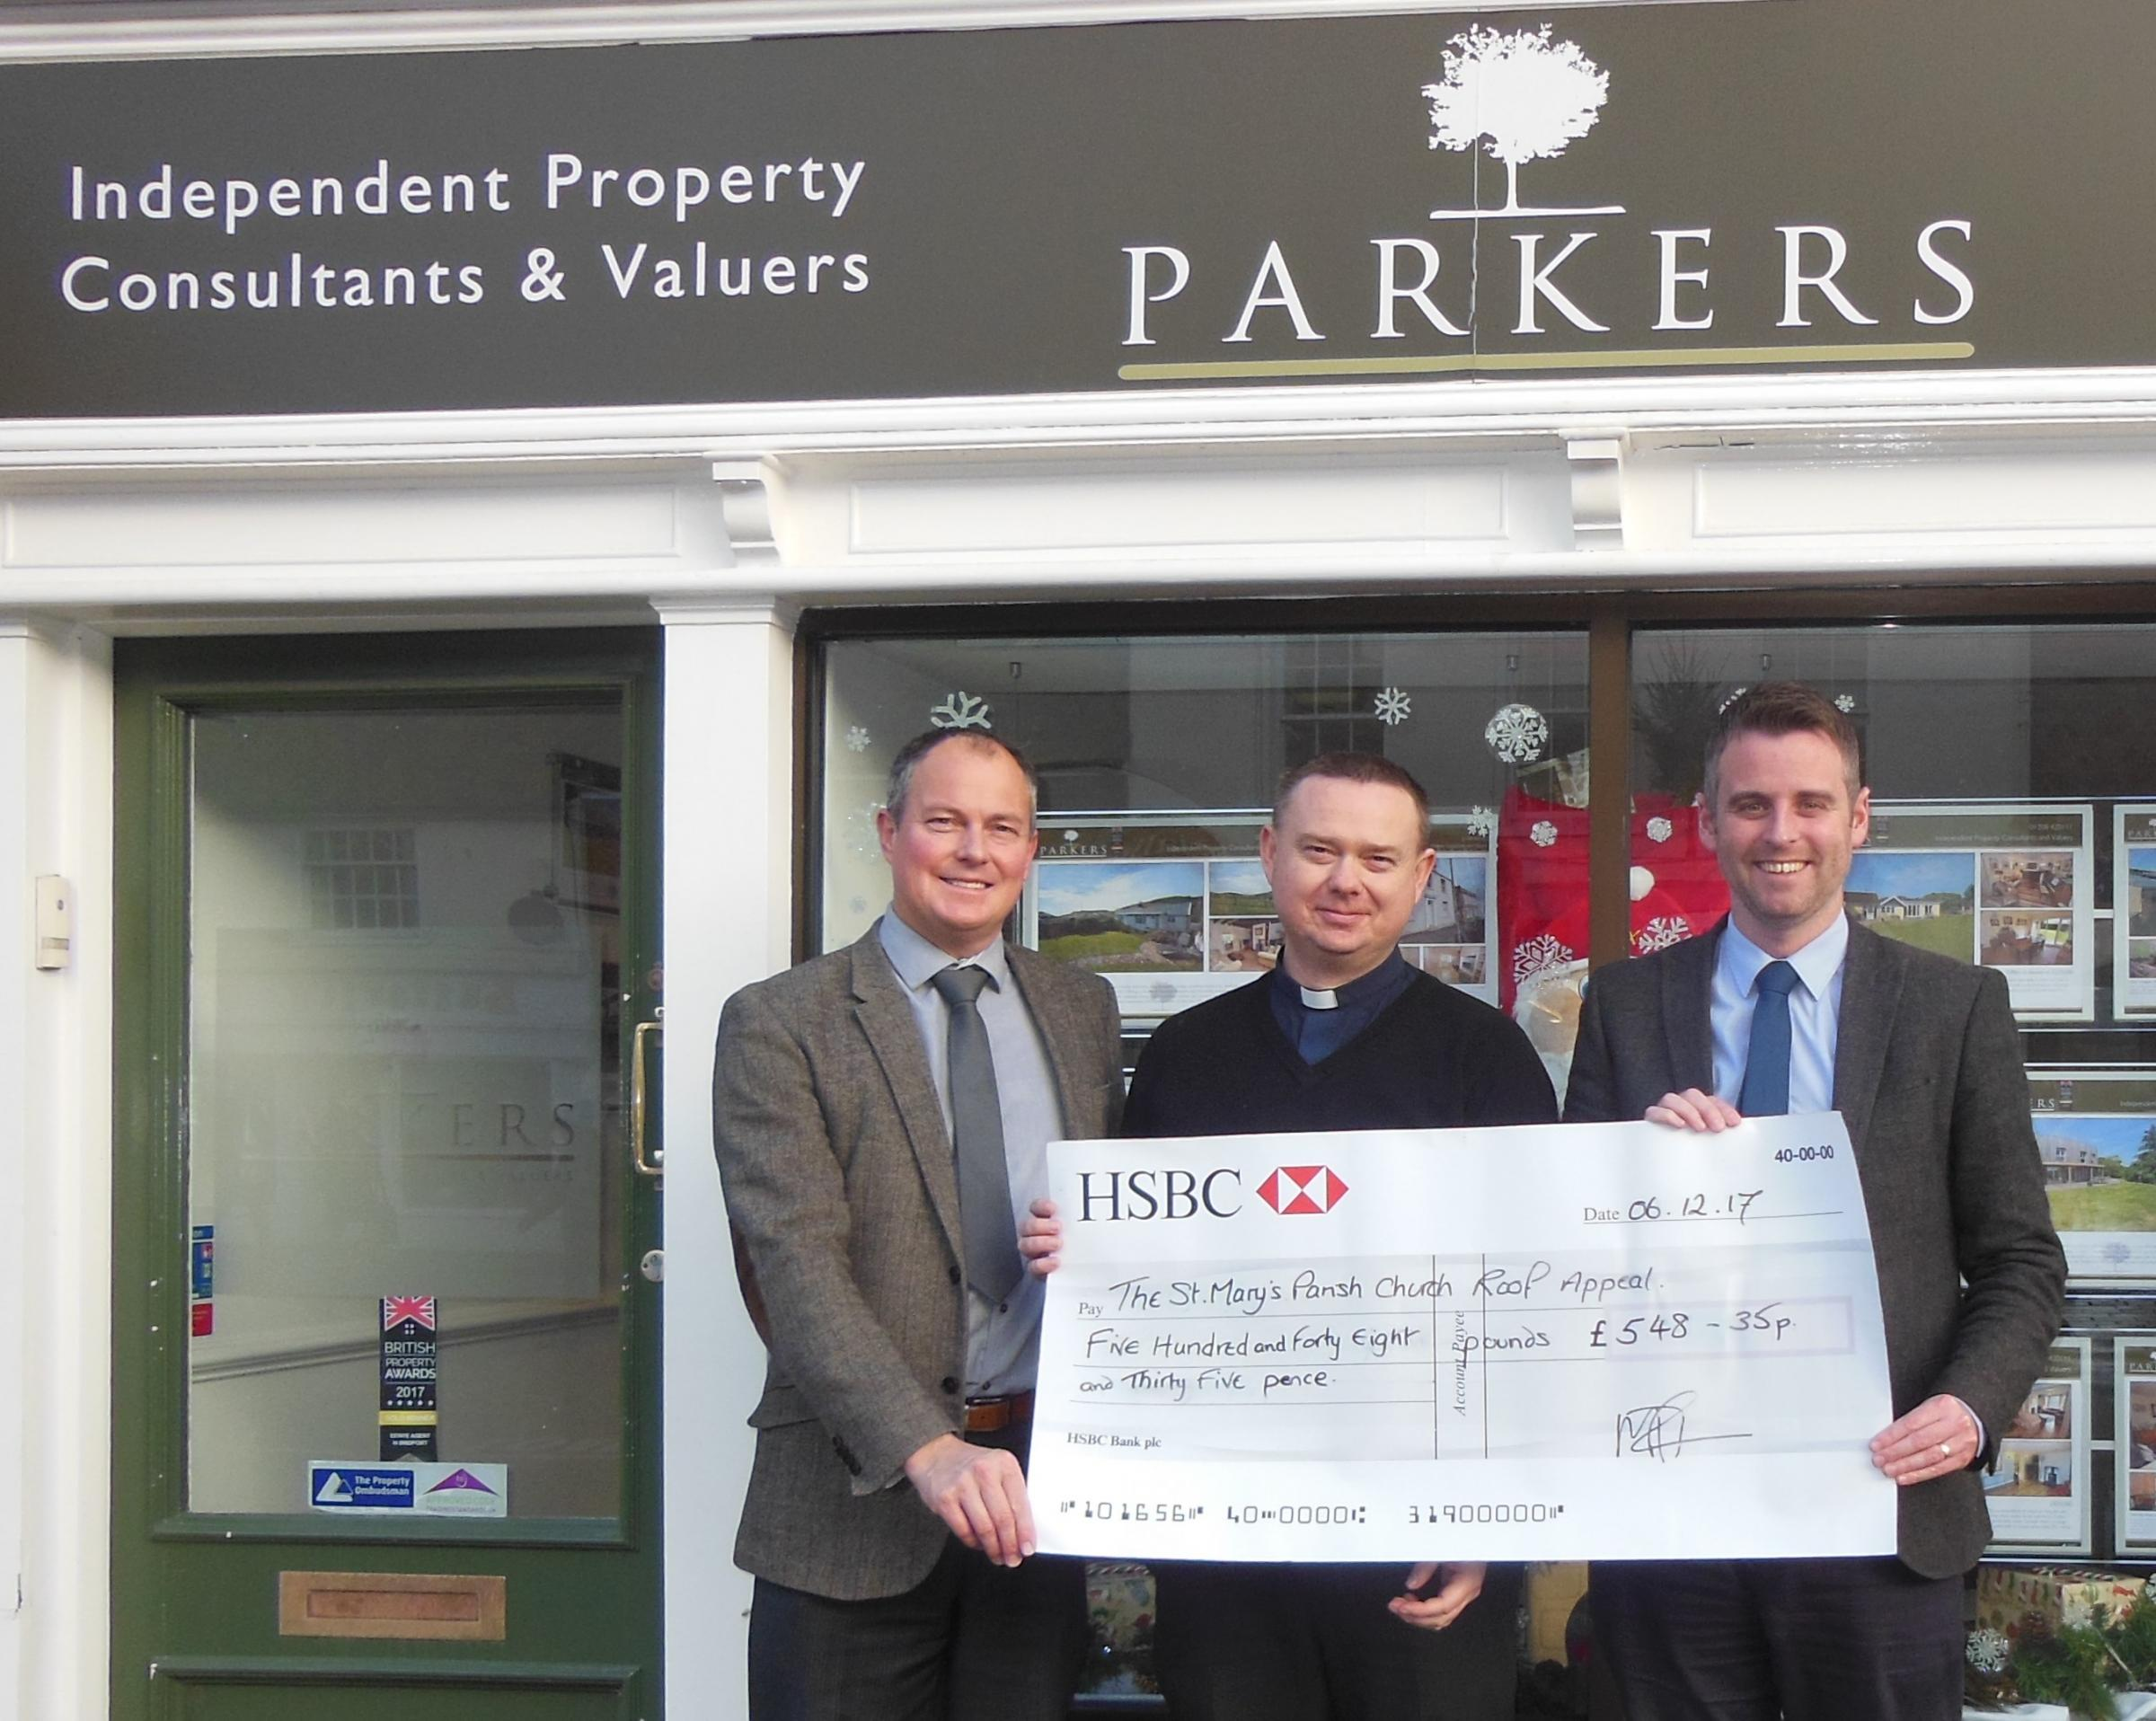 The donation from Parkers